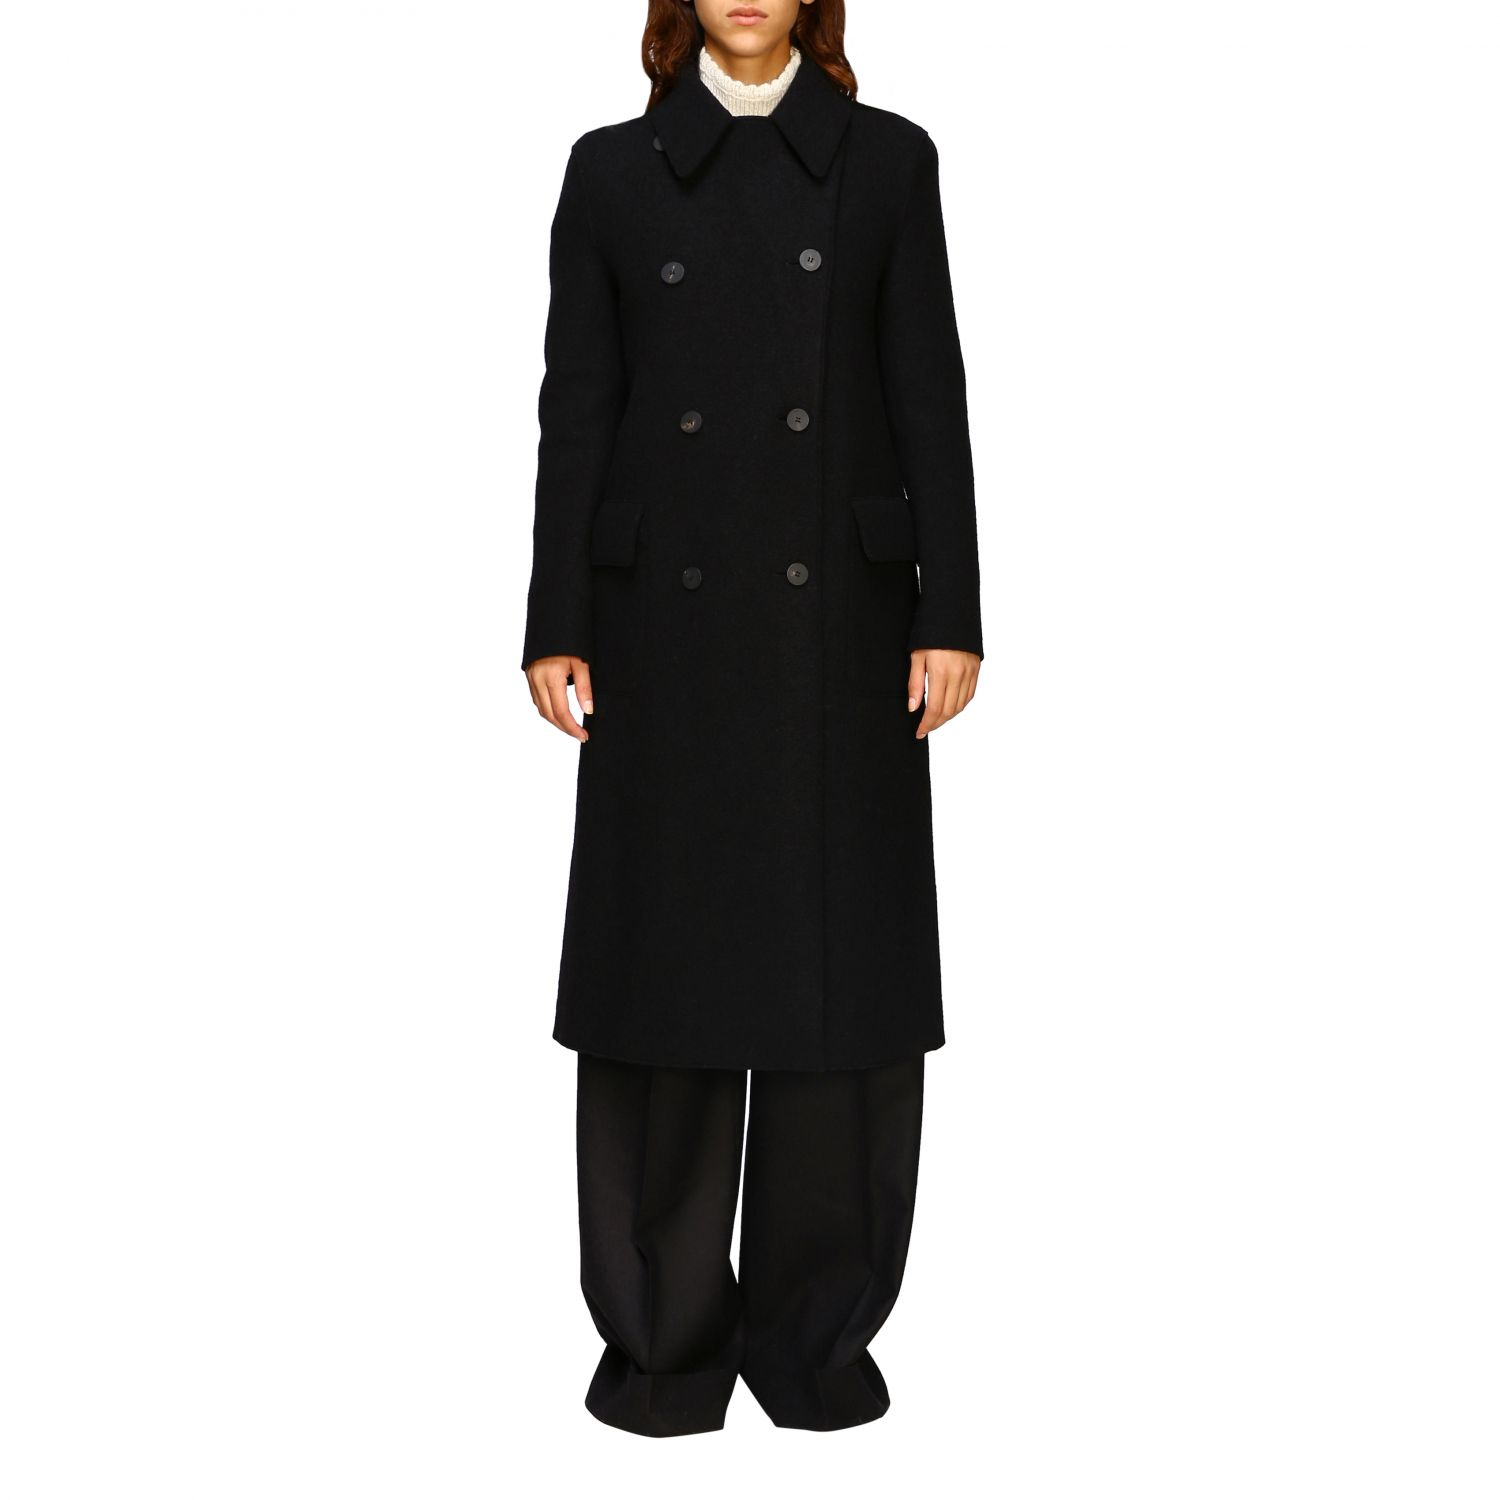 Coat Harris Wharf London: Coat women Harris Wharf London black 1